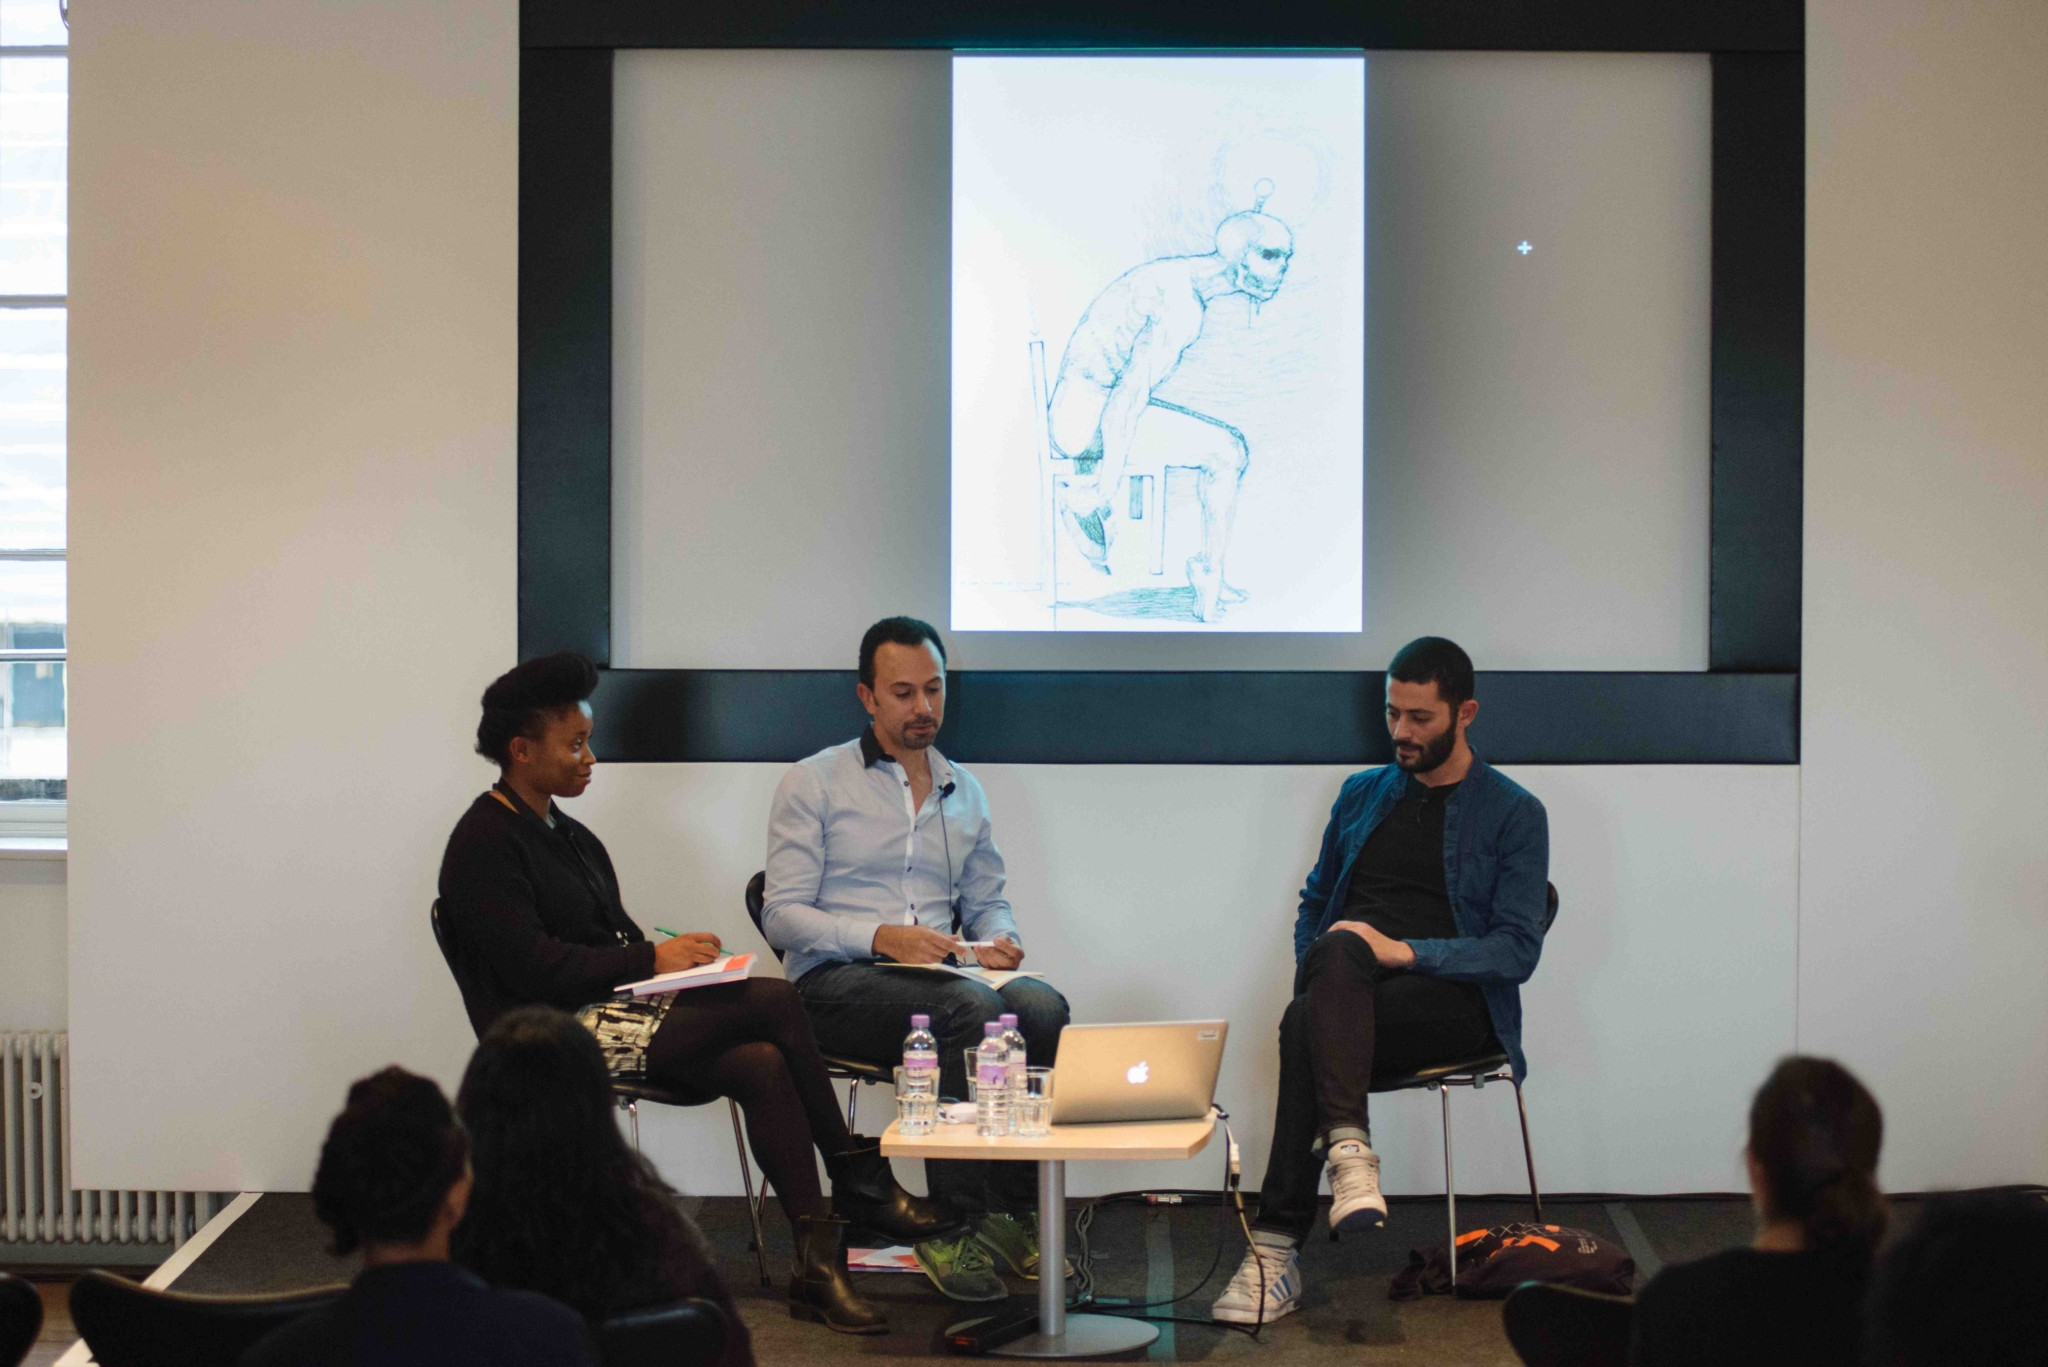 1:54 FORUM 2015: Omar Berrada in conversation with artist Nidhal Chamekh, with translator Paula De Alma. Image courtesy of 1:54 © Benjamin Hoffman